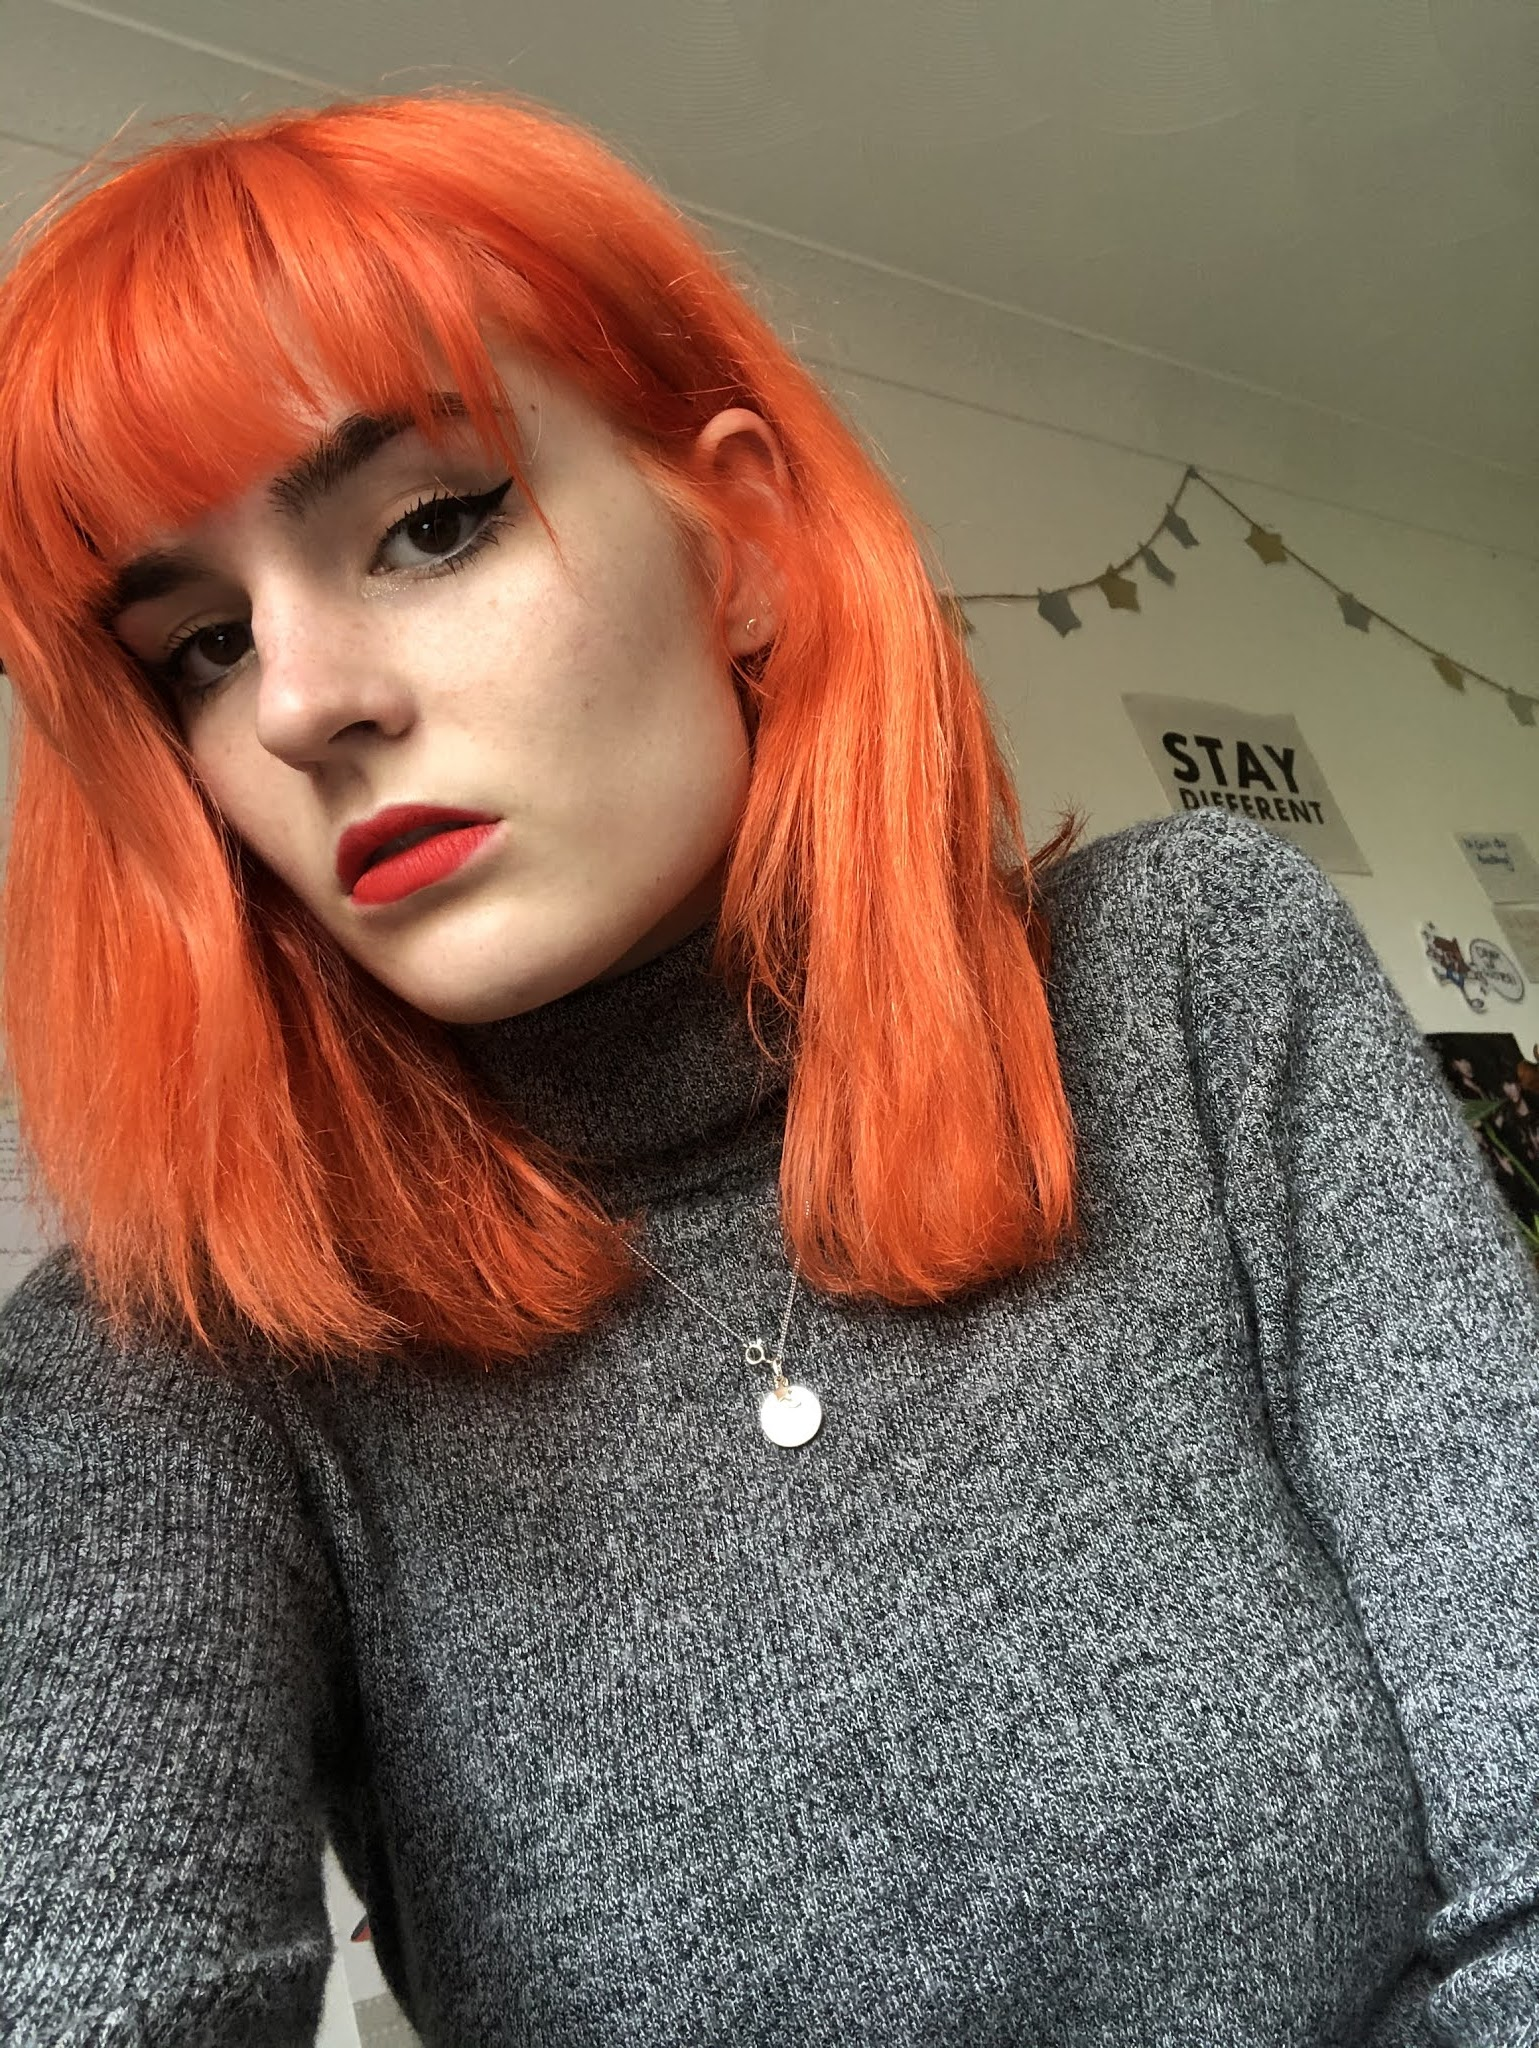 Girl with orange hair dyed with Directions Tangerine and grey turtleneck